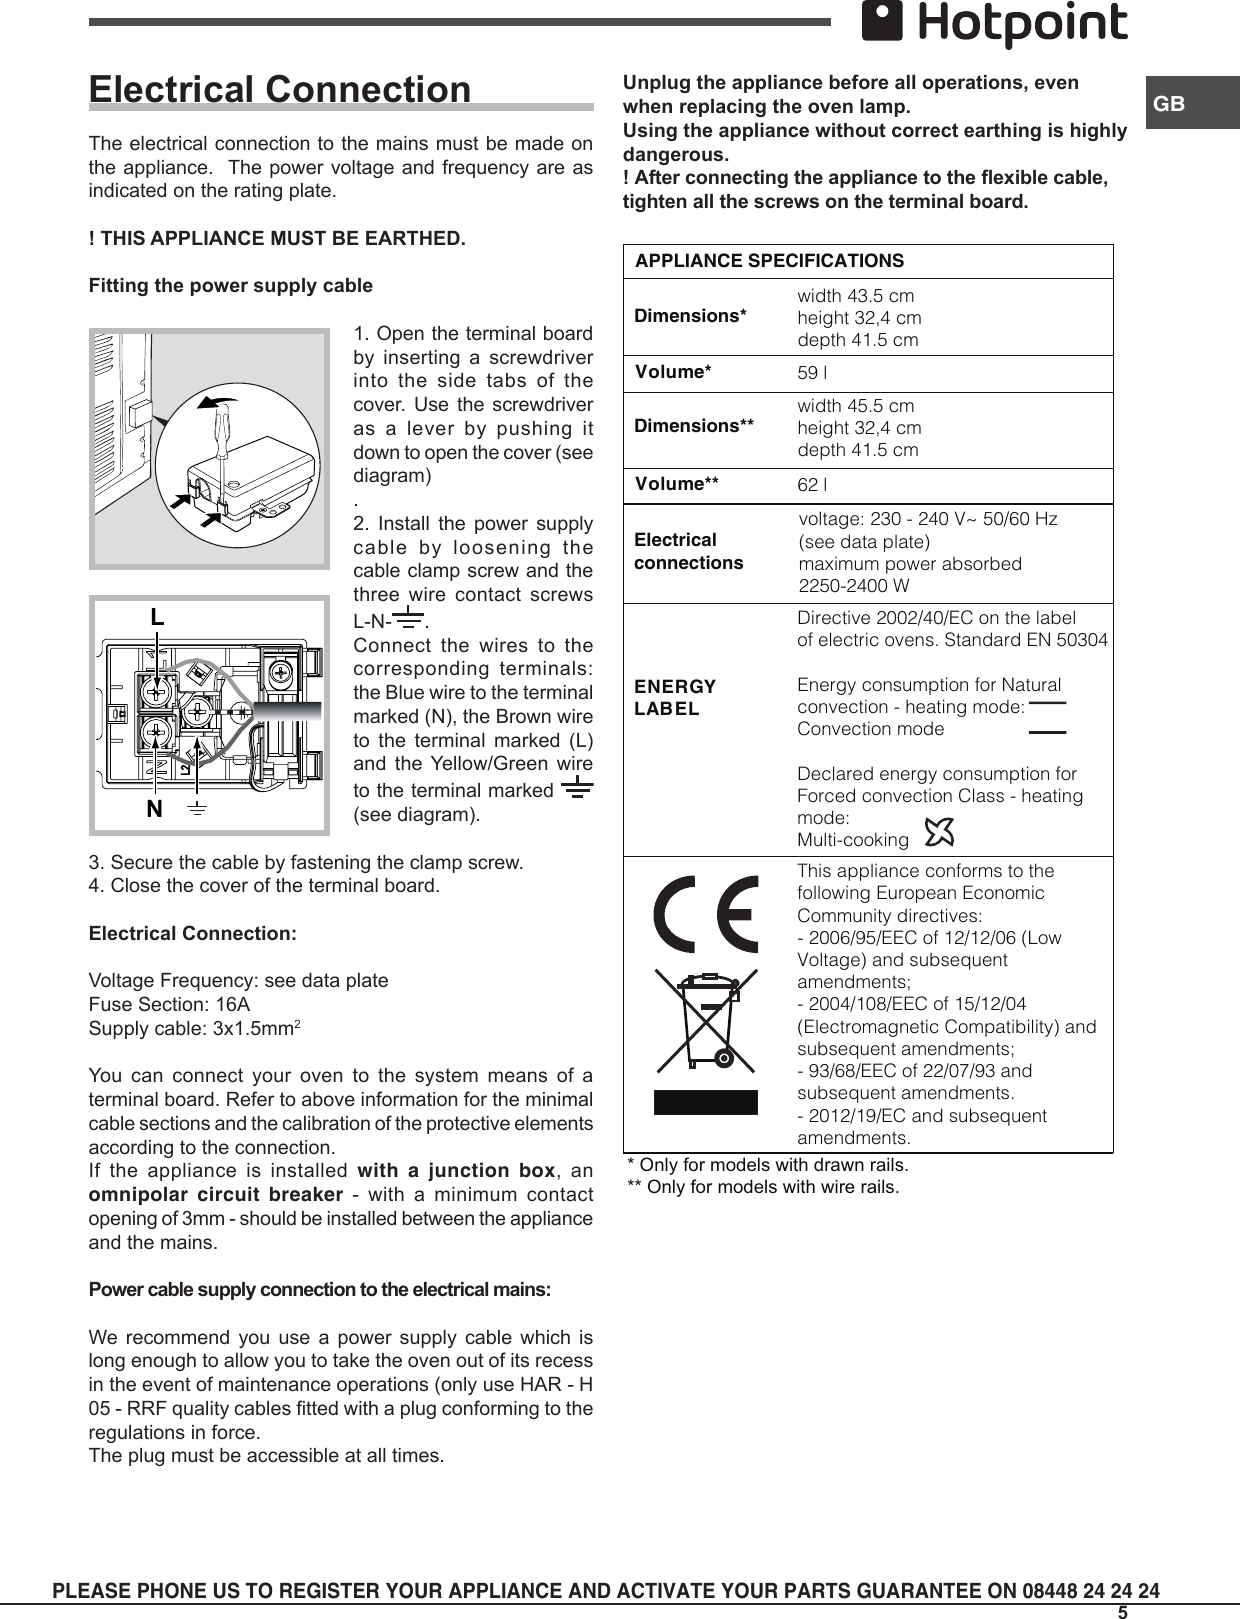 Hotpoint Oven Accessories Sbs 51 X S Users Manual Forno Multifunzione 5 Stove Wiring Diagram Page Of 12